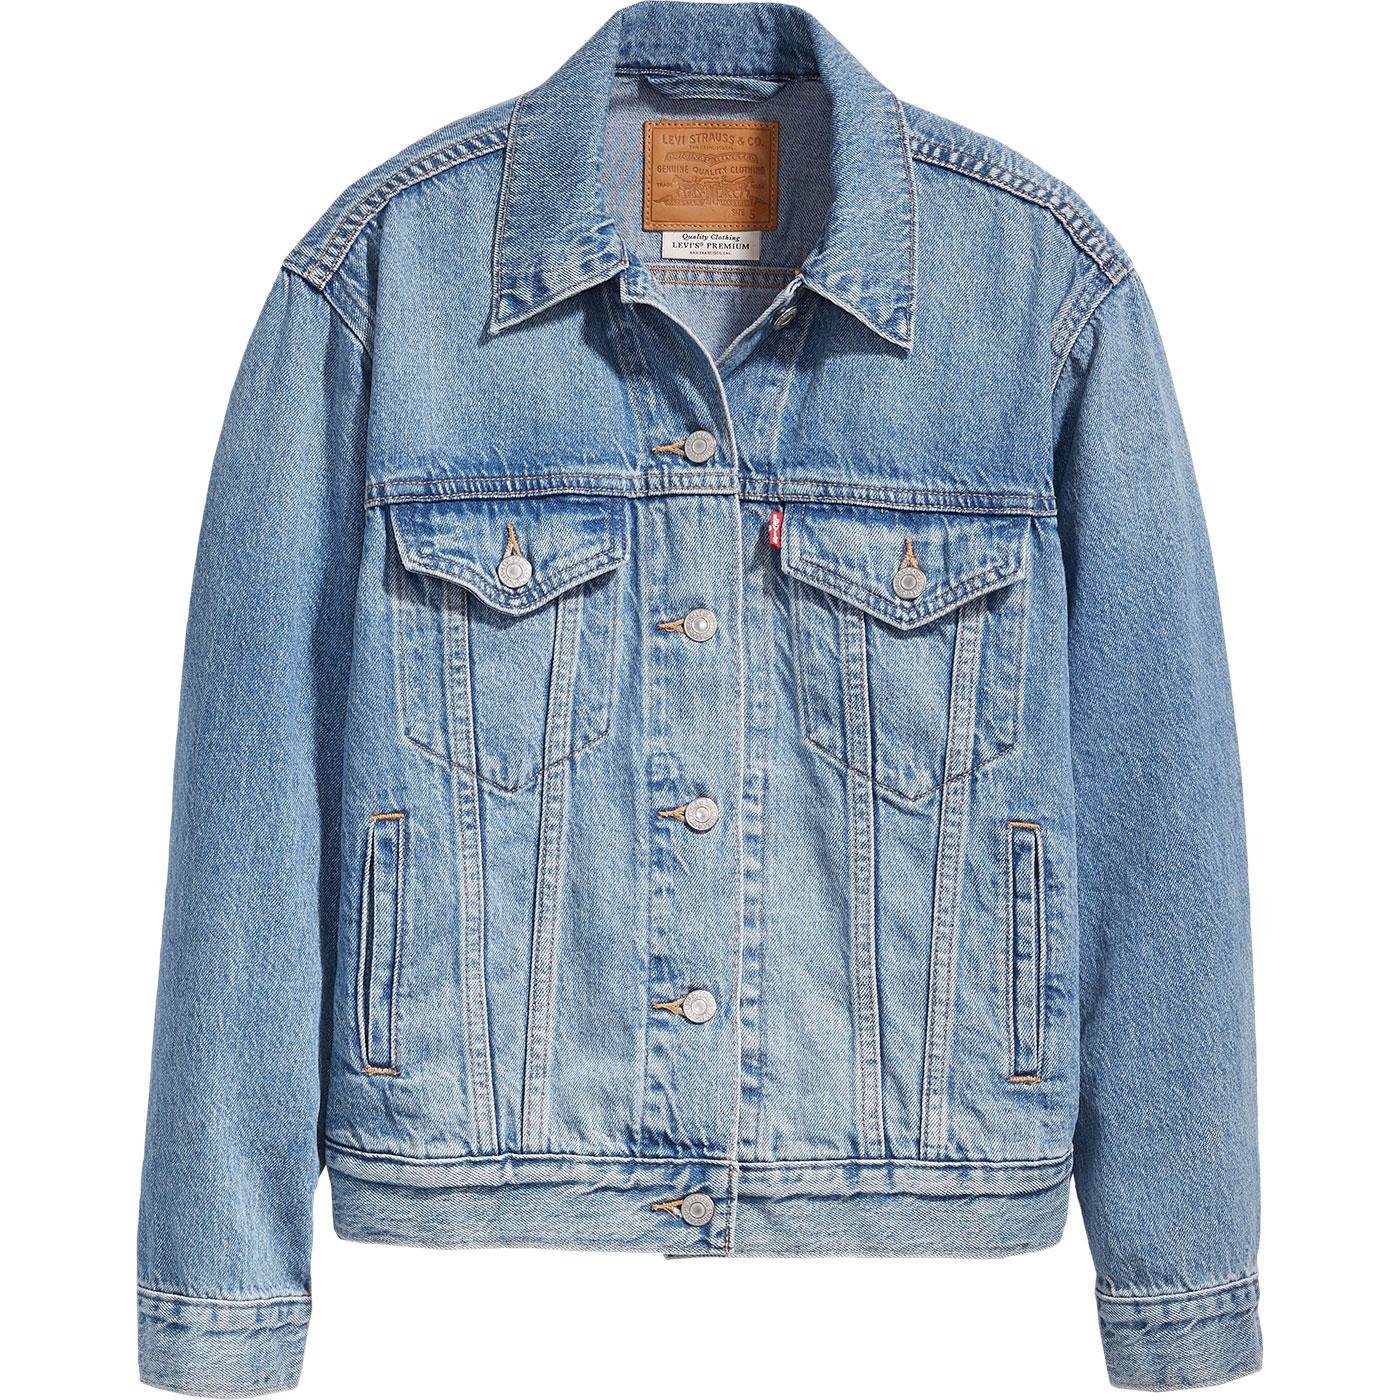 LEVI'S Ex-Boyfriend Trucker Jacket SOFT AS BUTTER